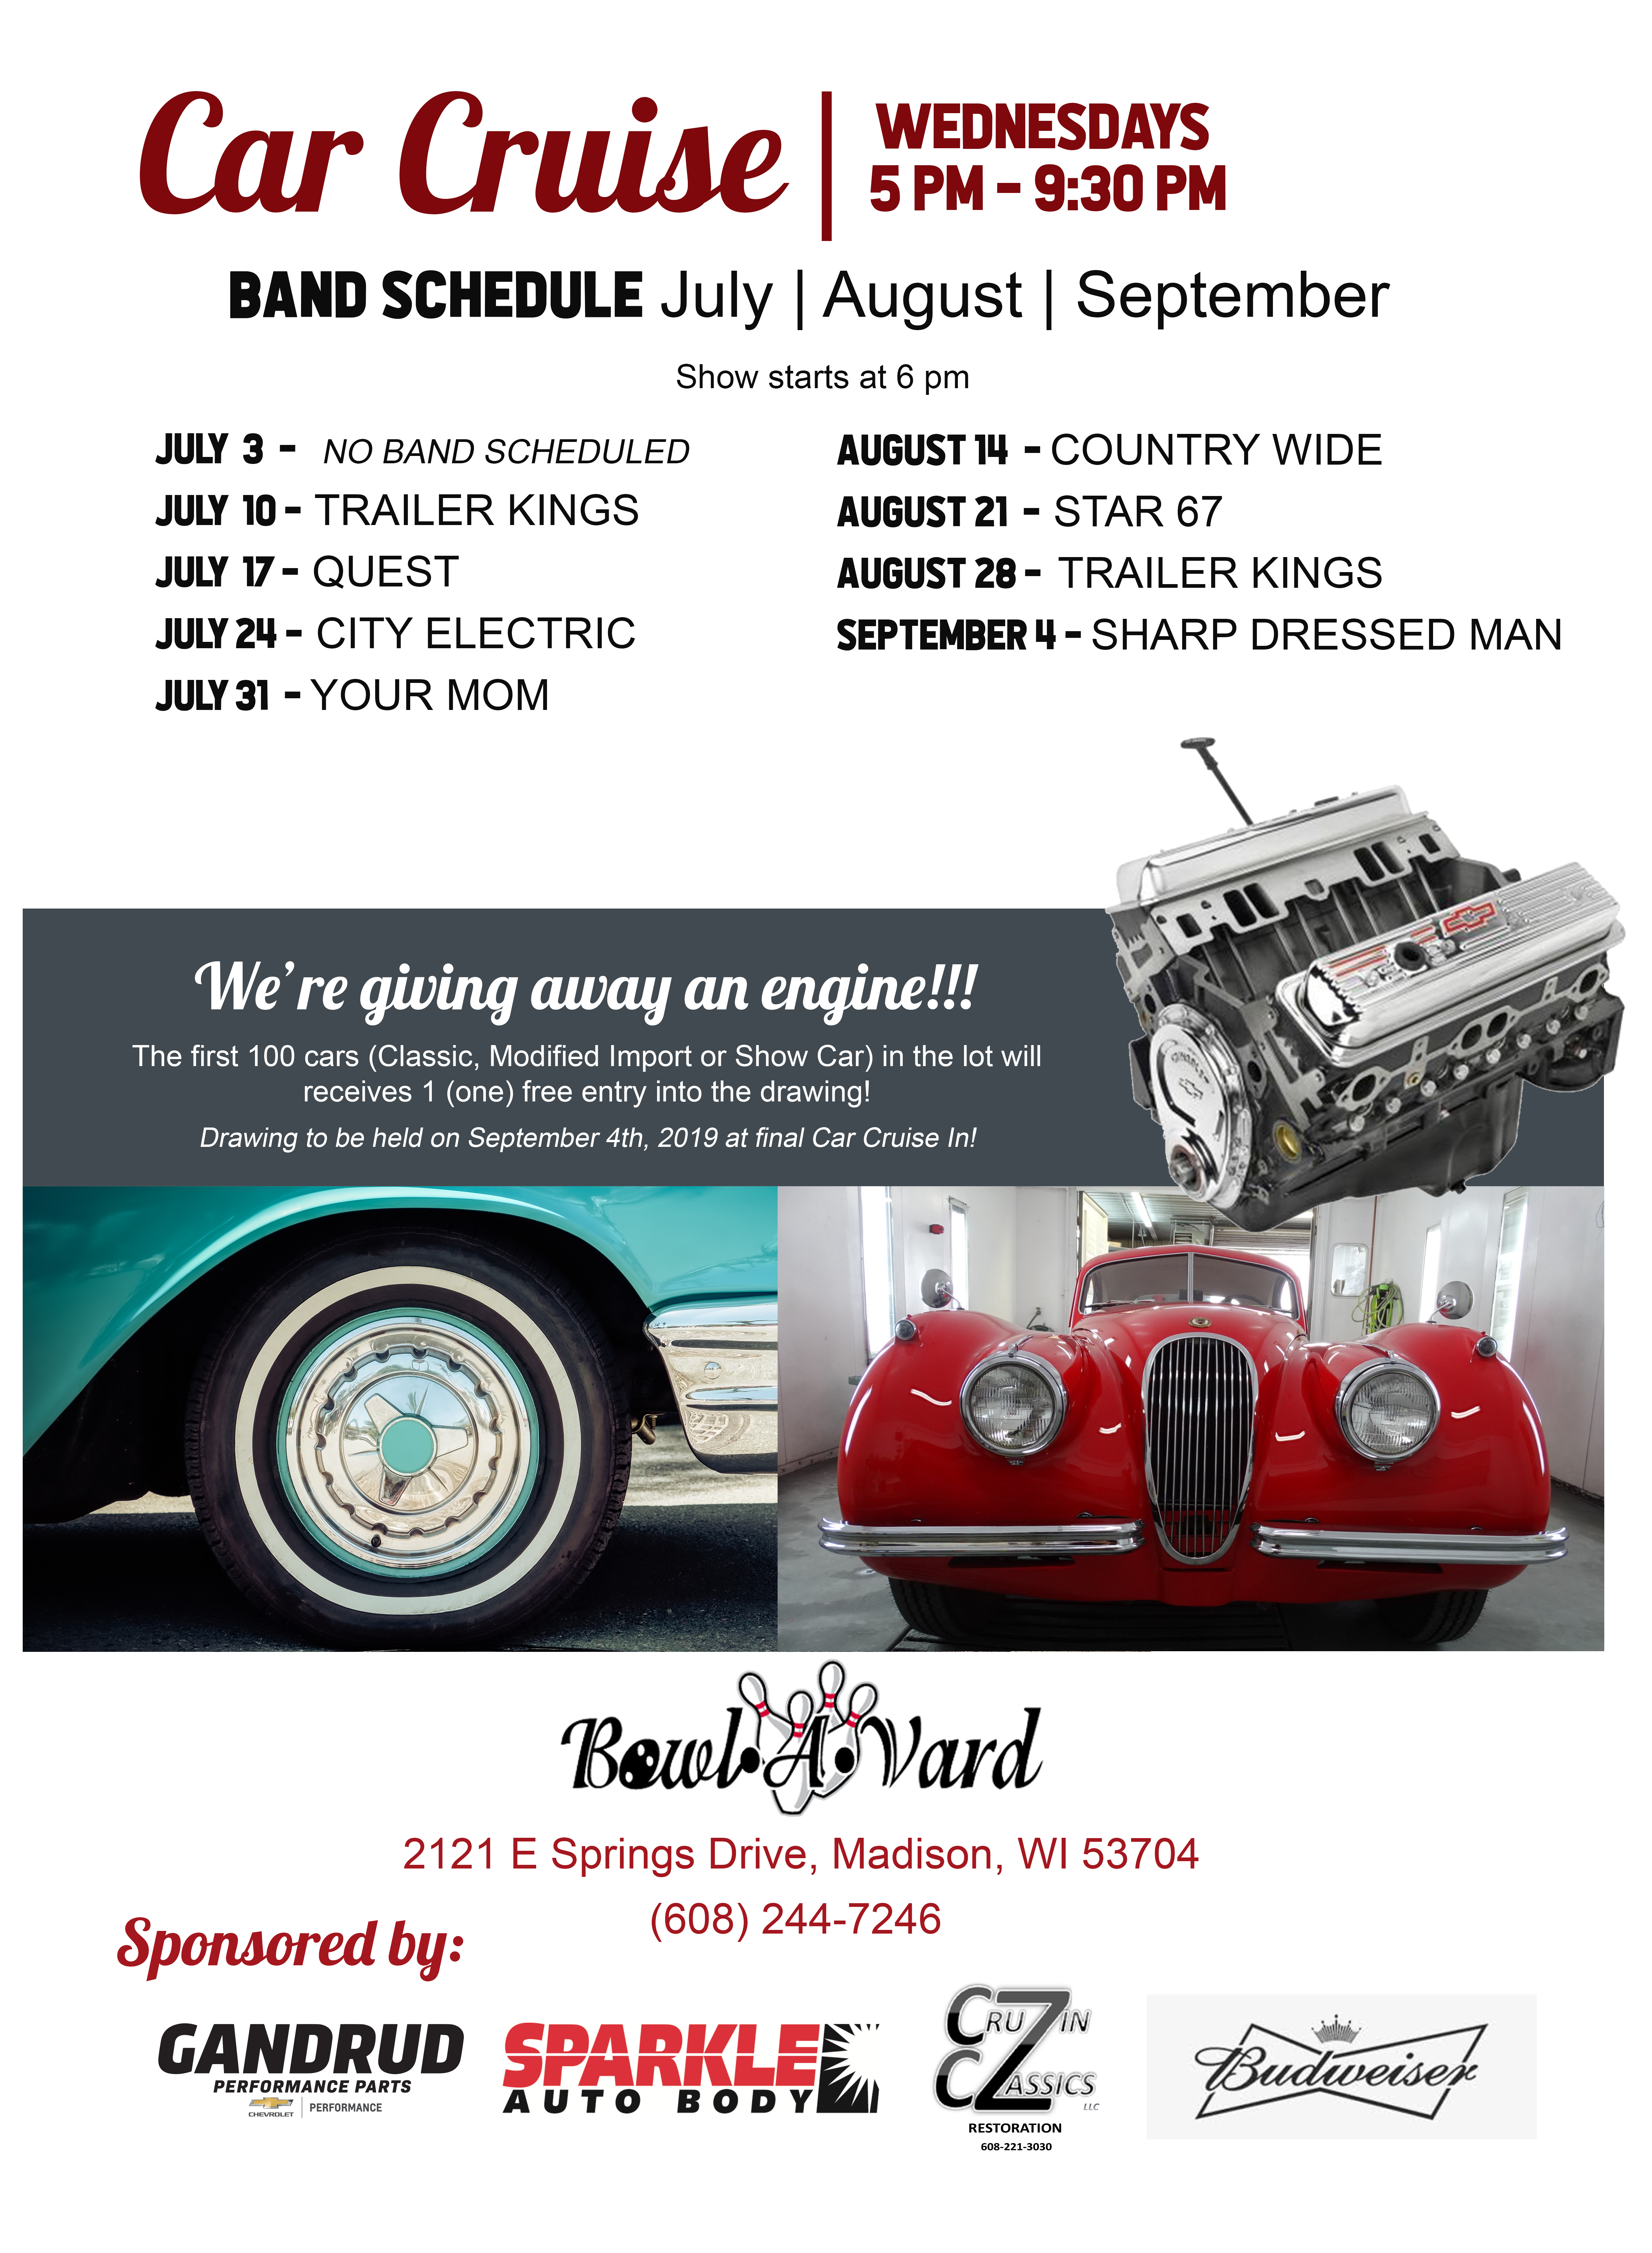 Car Cruise: Wednesdays from 5 pm to 9:30 pm. Band Schedule for July, August, September. July 3 - No band is scheduled. July 10 - Trailer Kings. July 17 - Quest. July24 - City Electric. July 31 - Your Mom. August 14 - Country Wide. August 21 - Star 67, August 28 - Trailer Kings, Septembre 4 - Sharp Dressed Man.